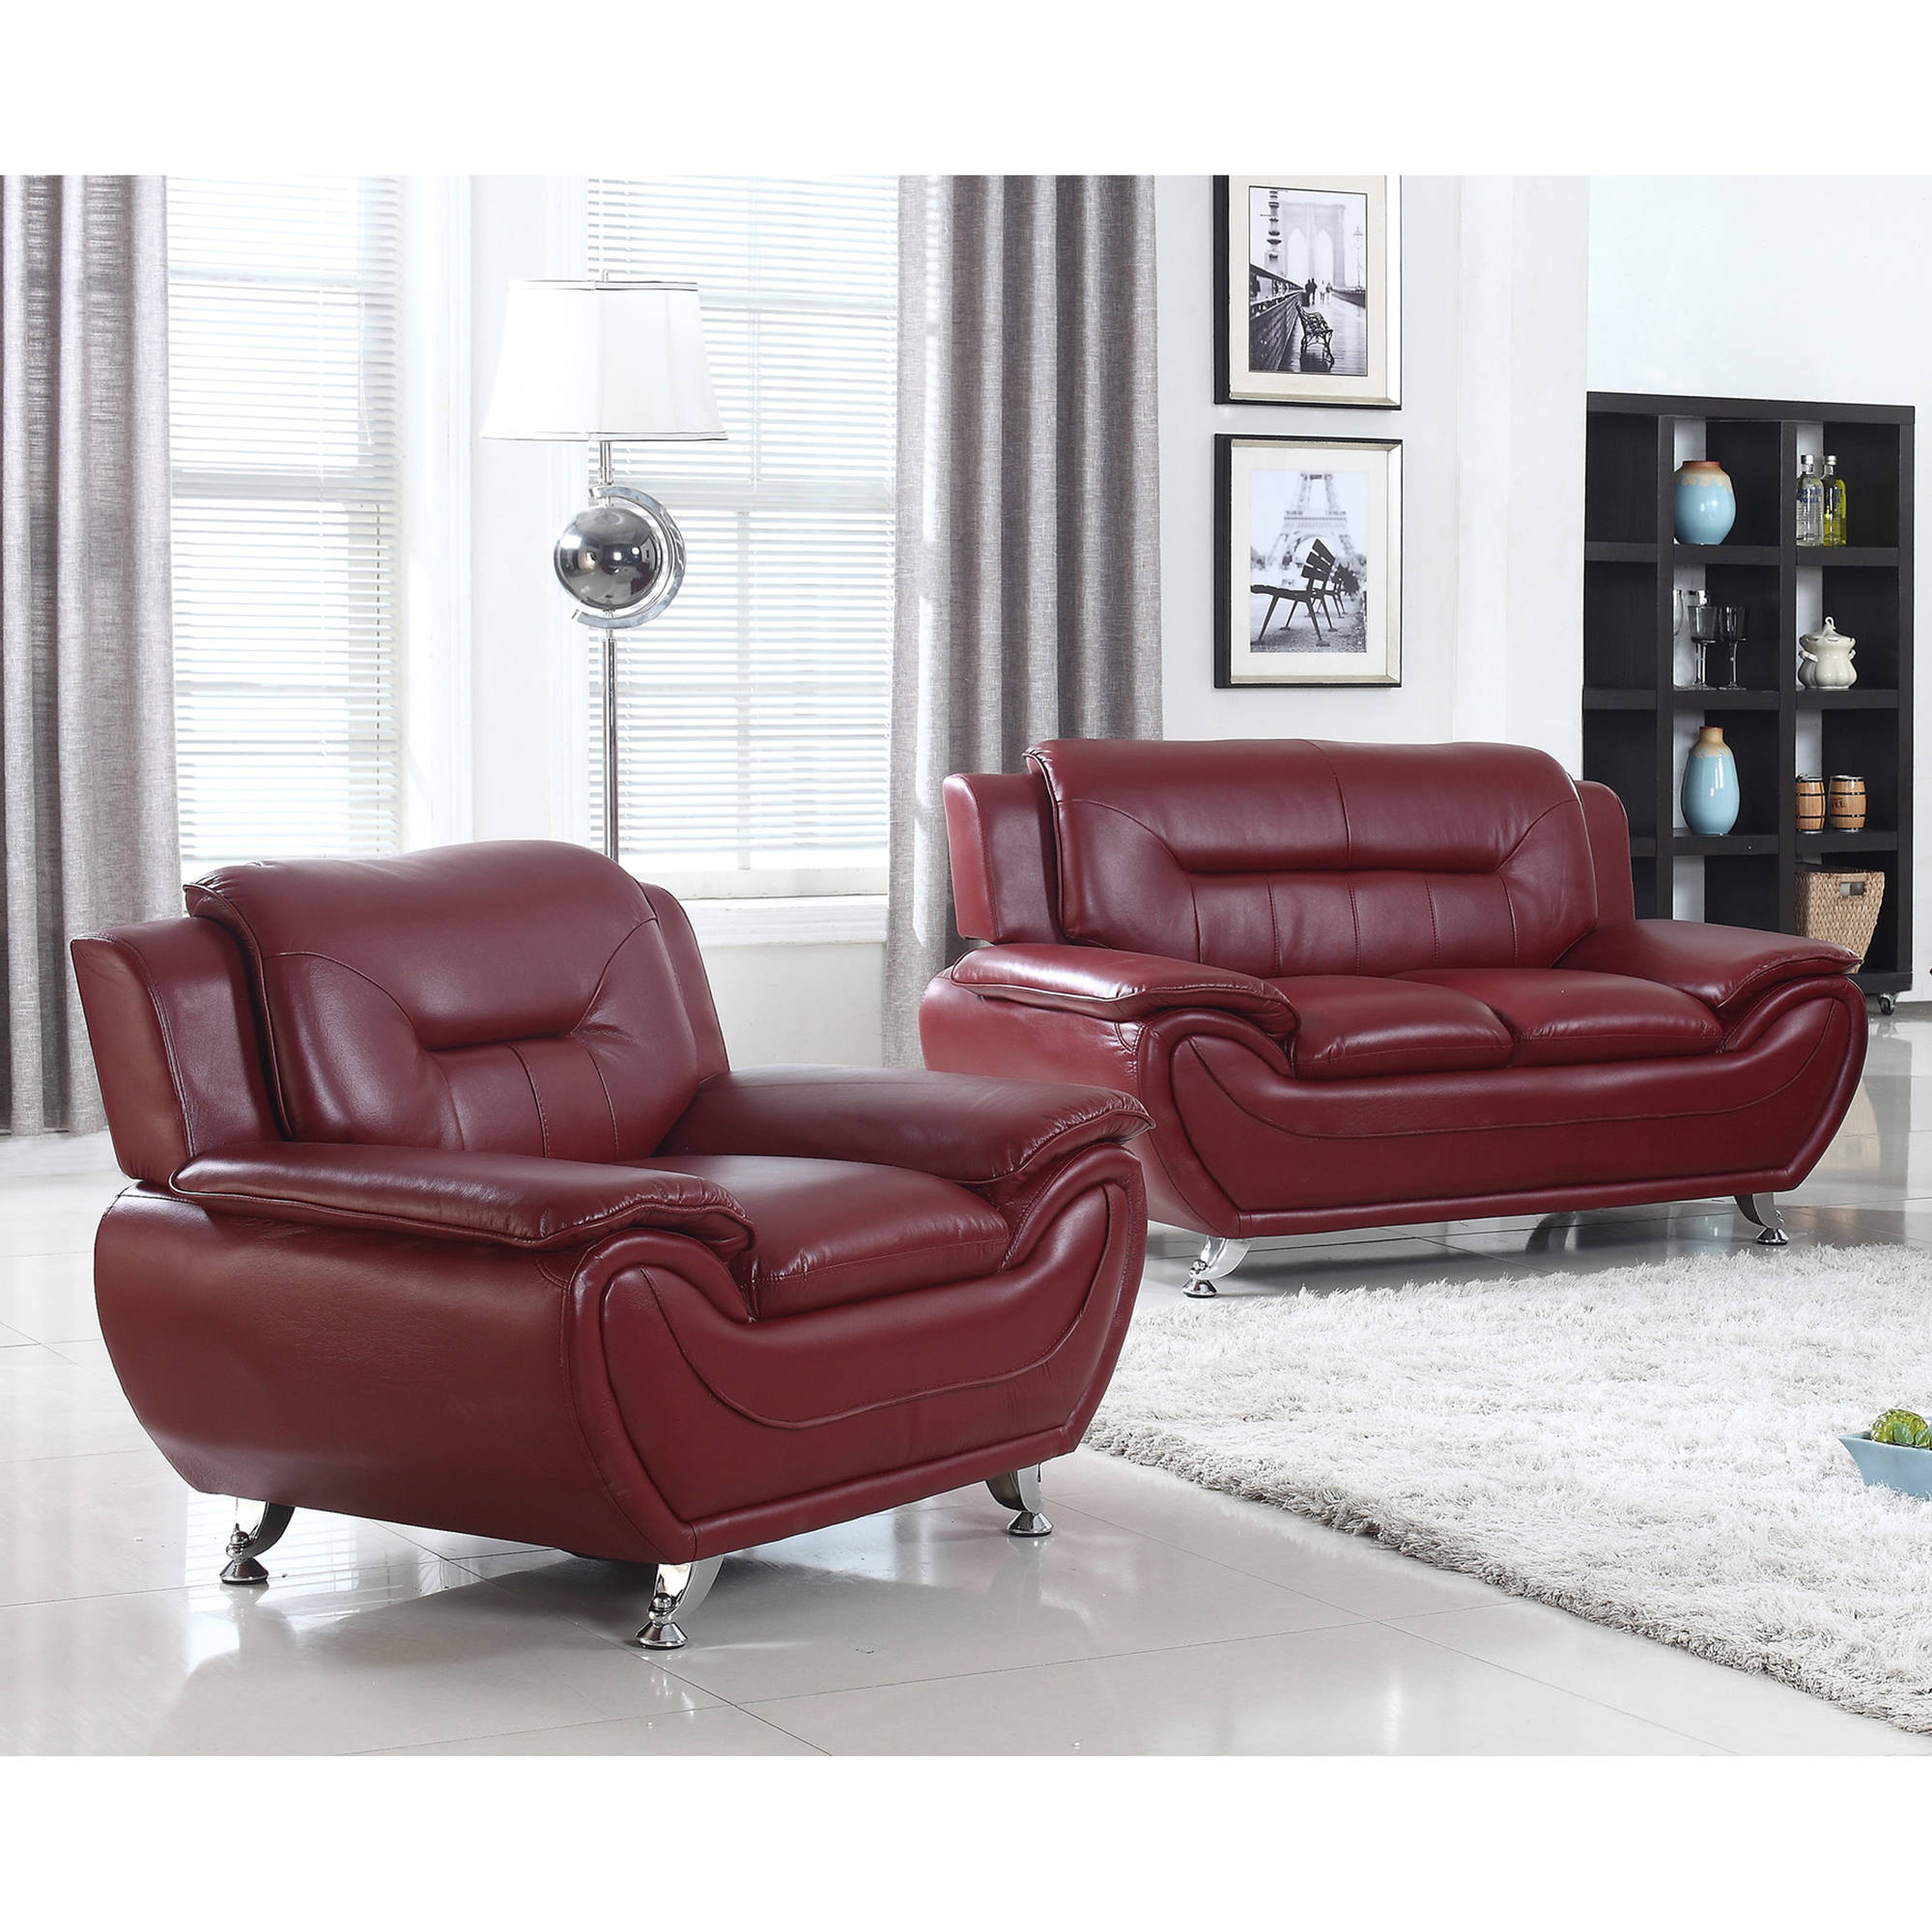 UFE Norton Burgundy Faux Leather 2-Piece Modern Living Room Loveseat and Chair Set